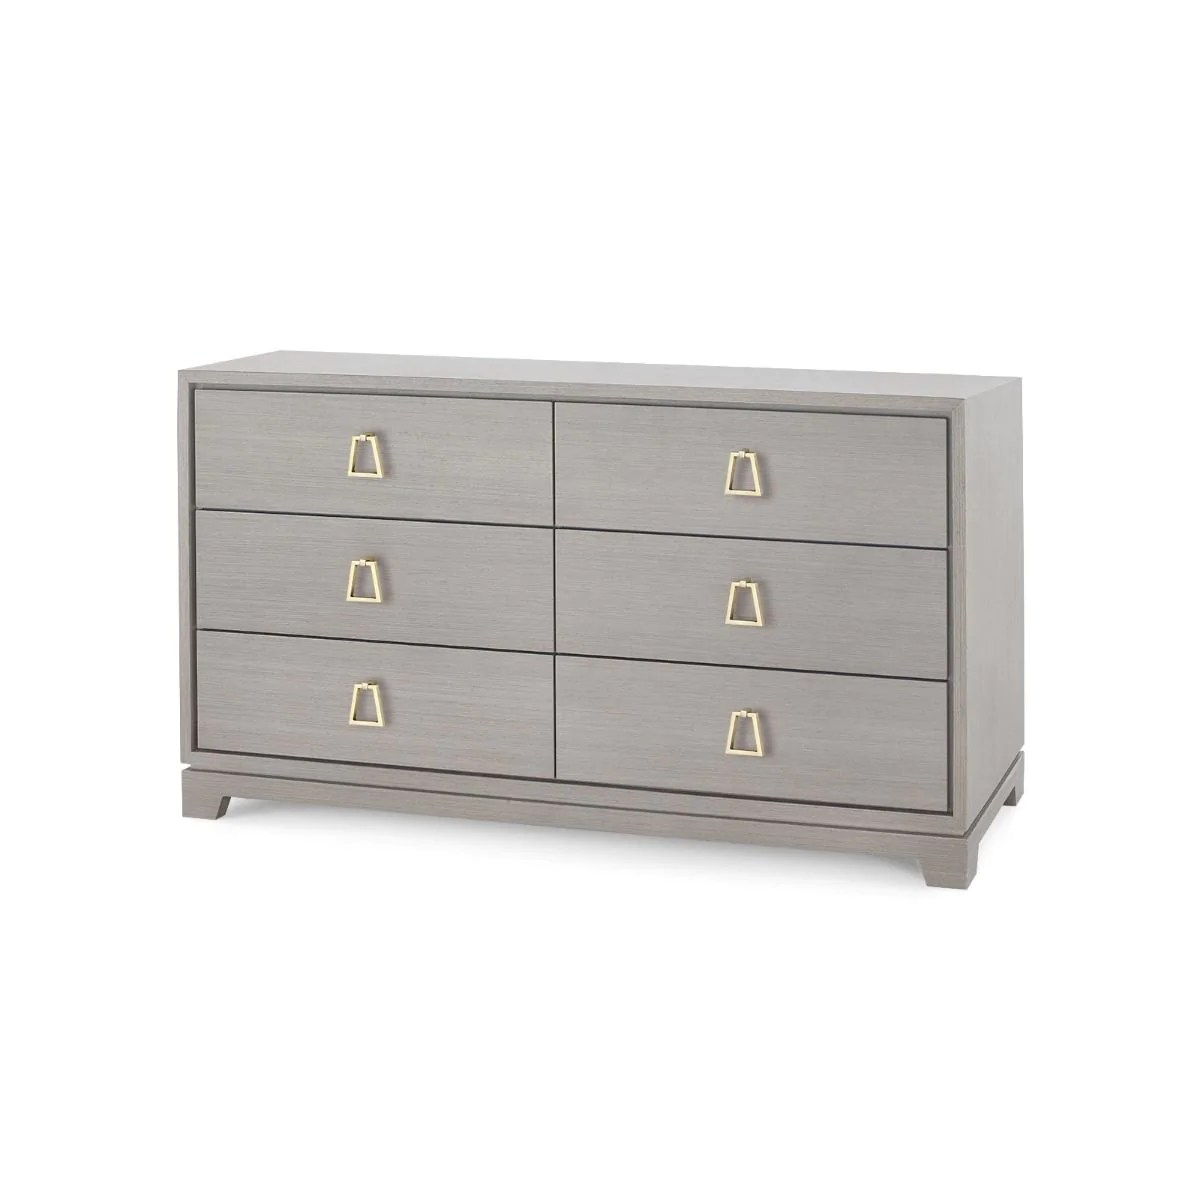 6 Drawer Chest Of Drawers Stanford Extra Large 6 Drawer Chest Light Gray